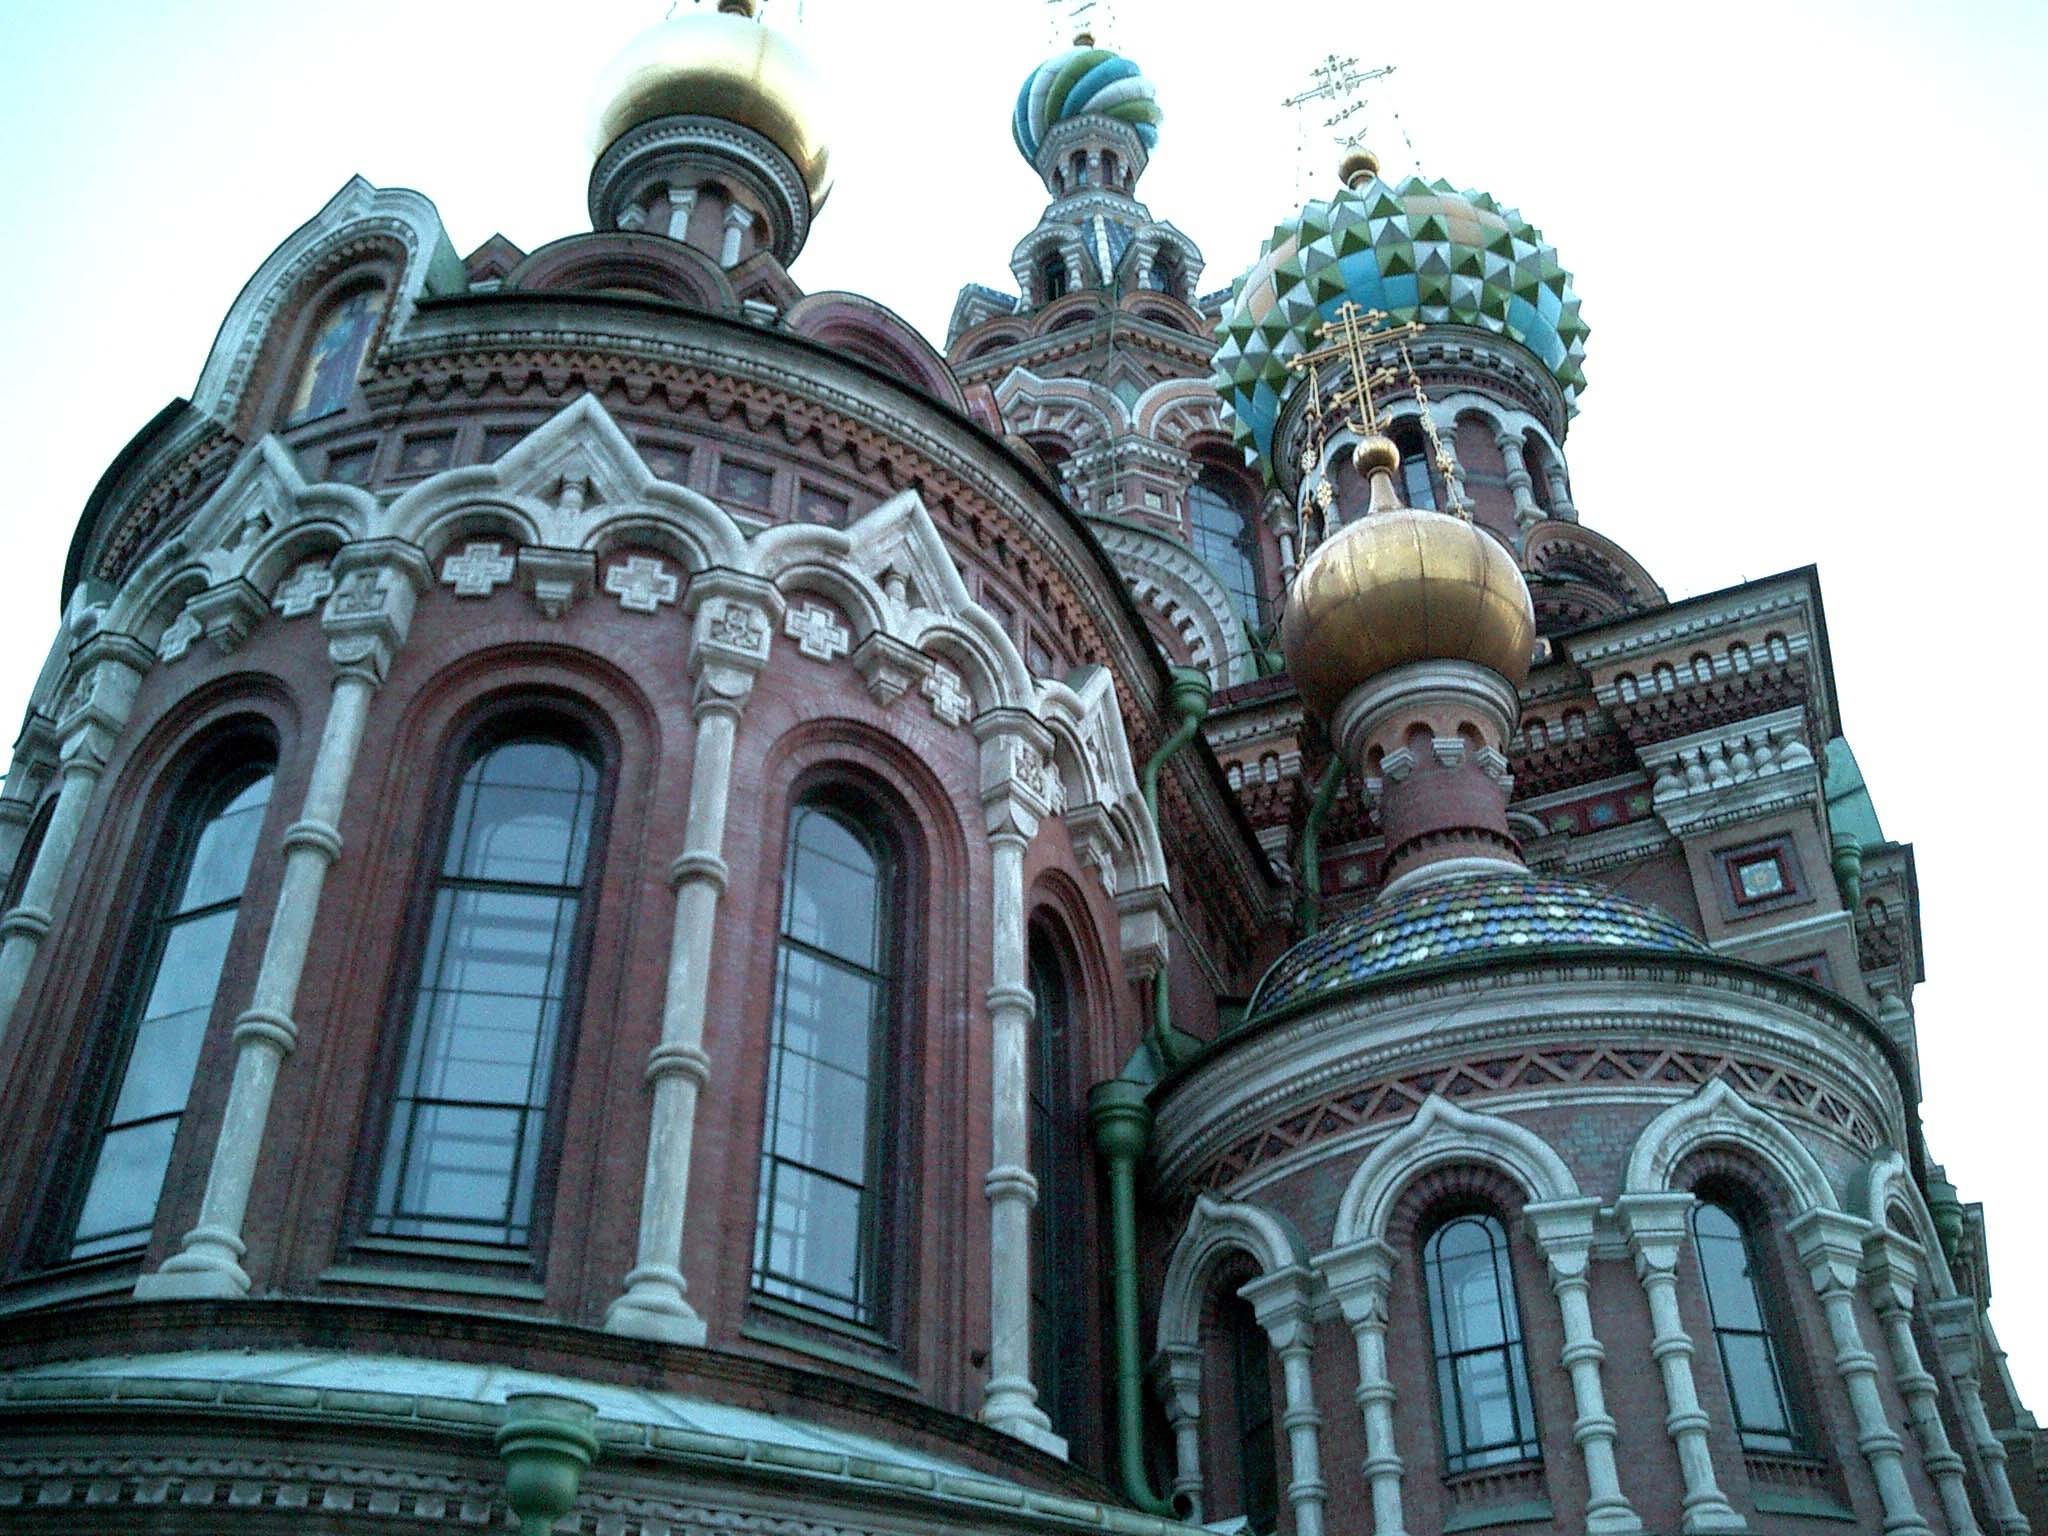 St Petersburg Architecture Church of the Savior on Blood 2005 13